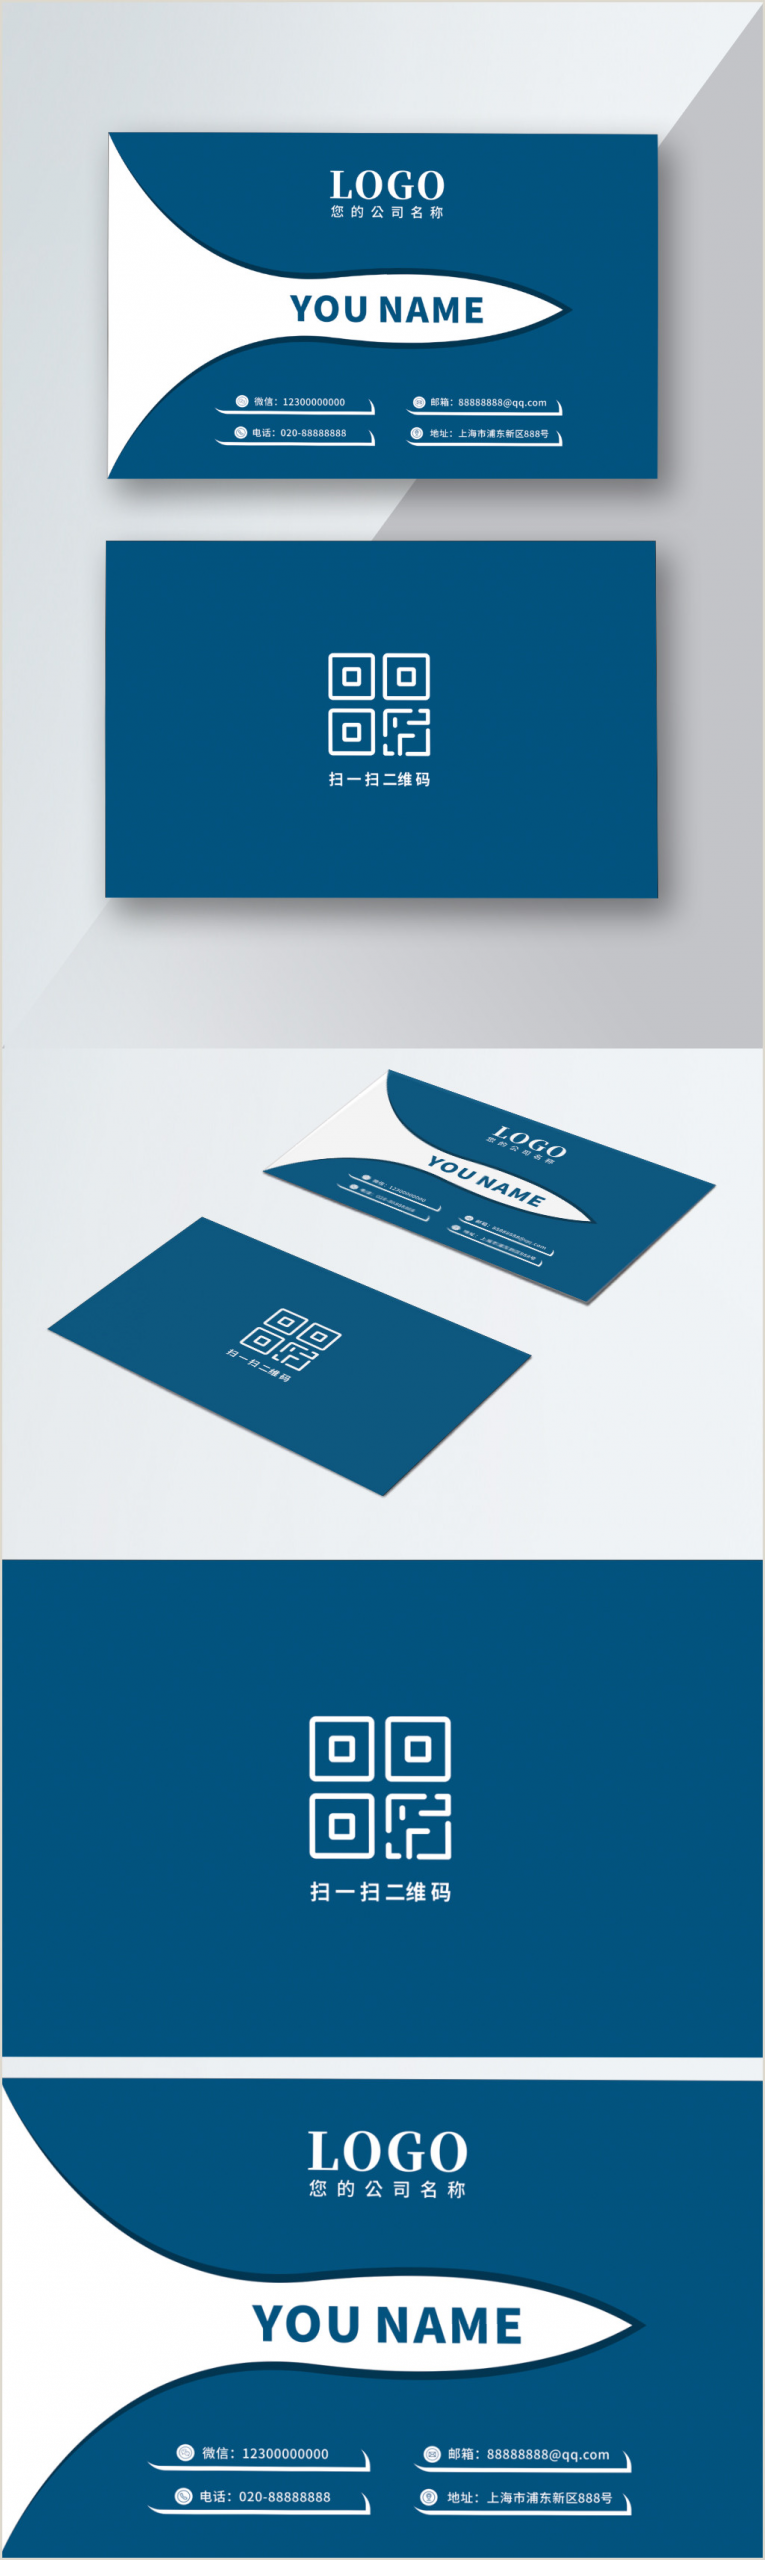 Traditional Business Card Black And White Business Senior Business Card With Qr Code